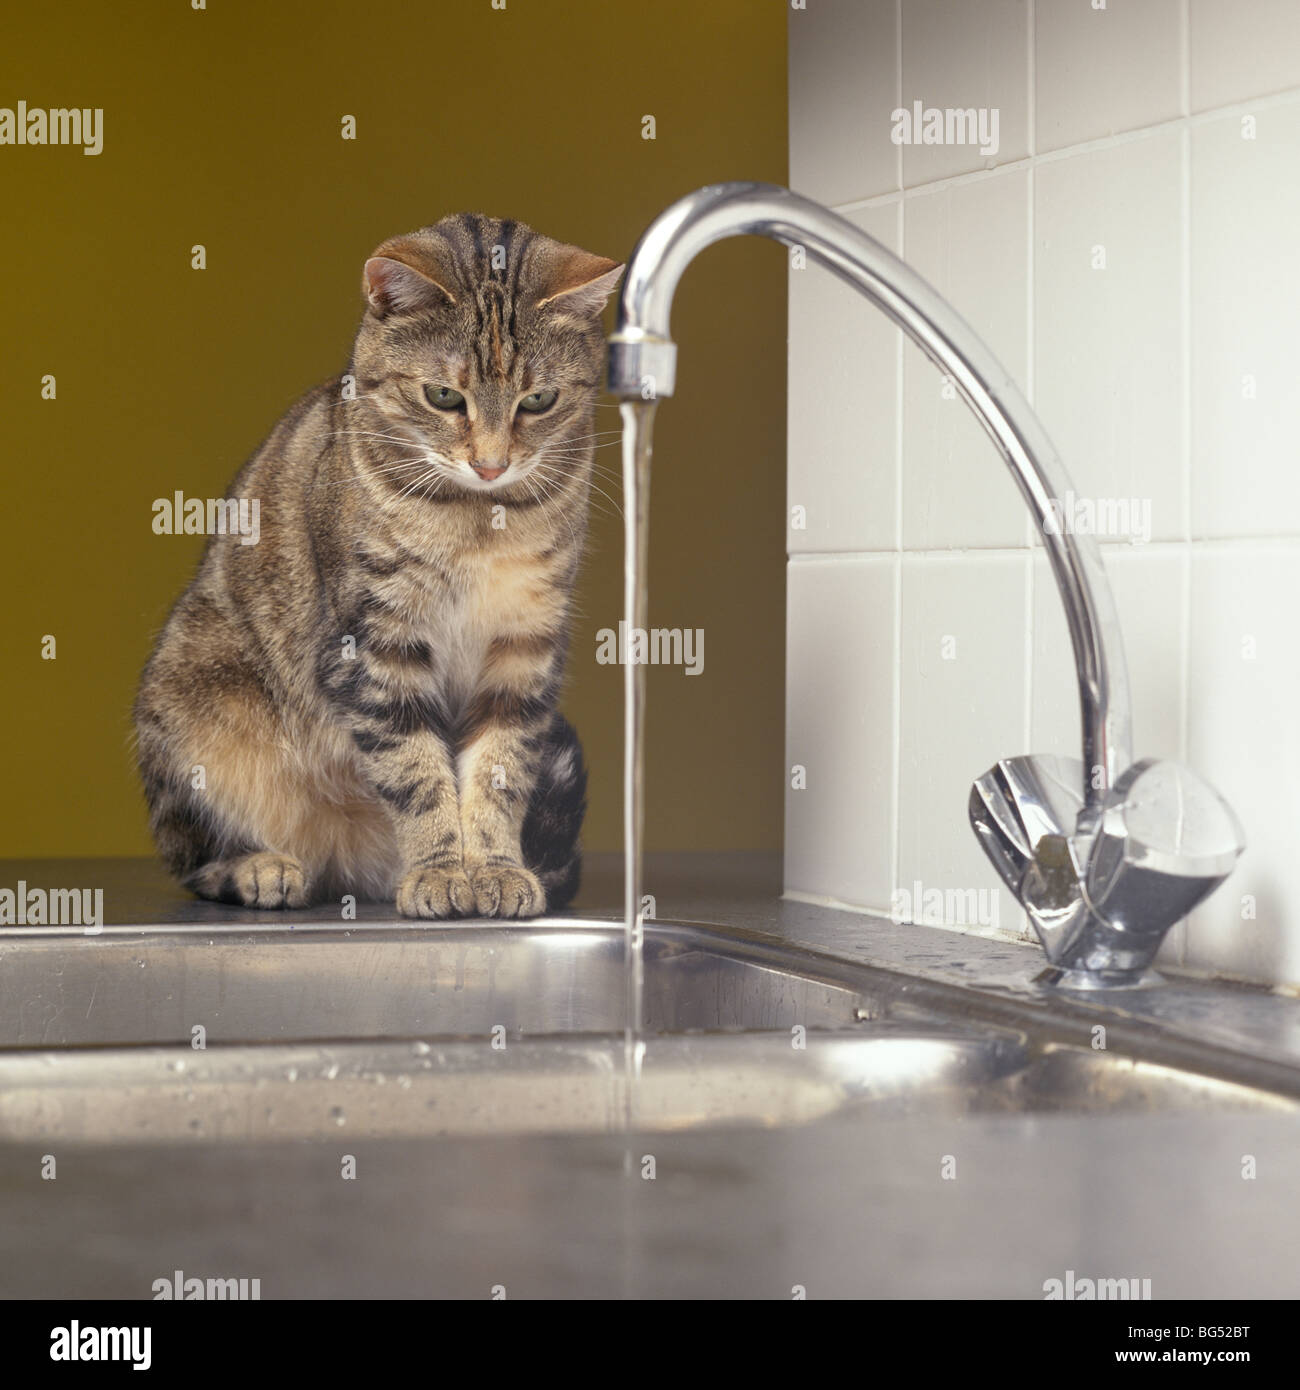 Tabby cat looking at the water tap - Stock Image